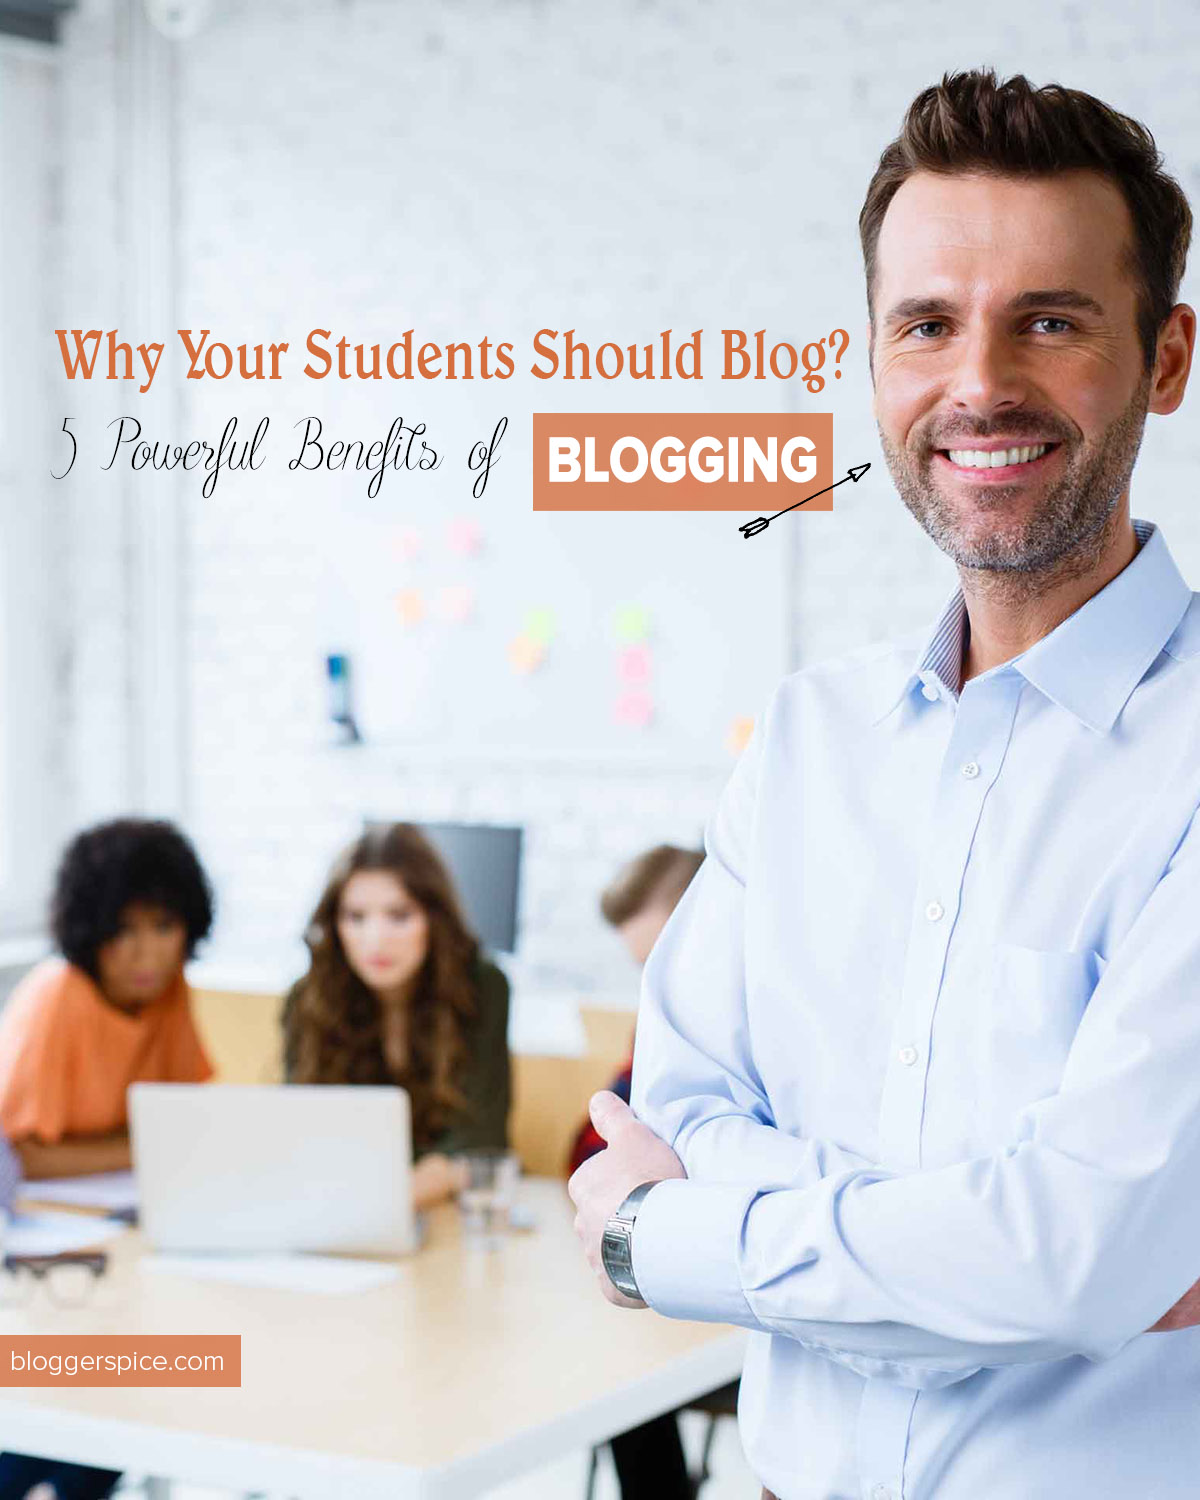 5 reasons why students should blog